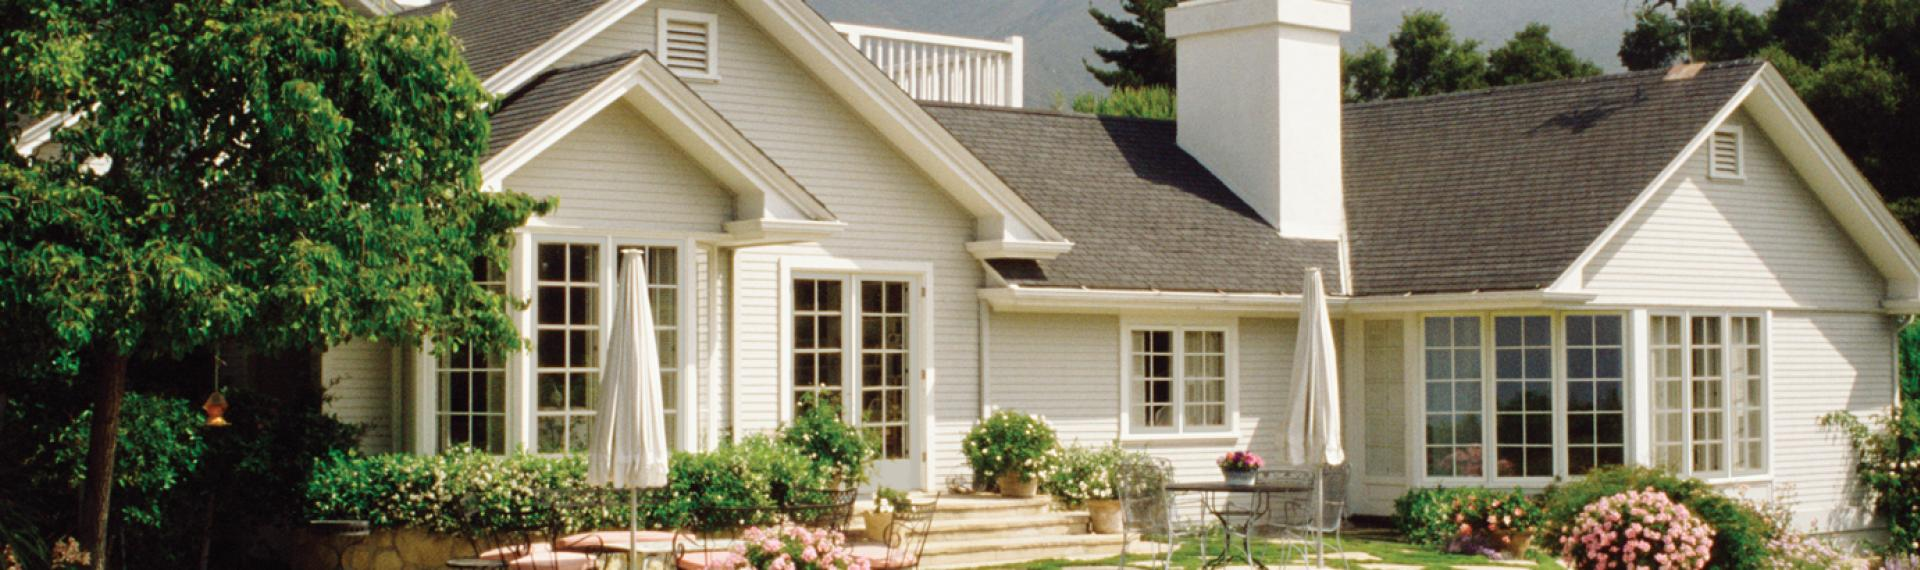 Craftsman Bungalow Architectural Style Considerations